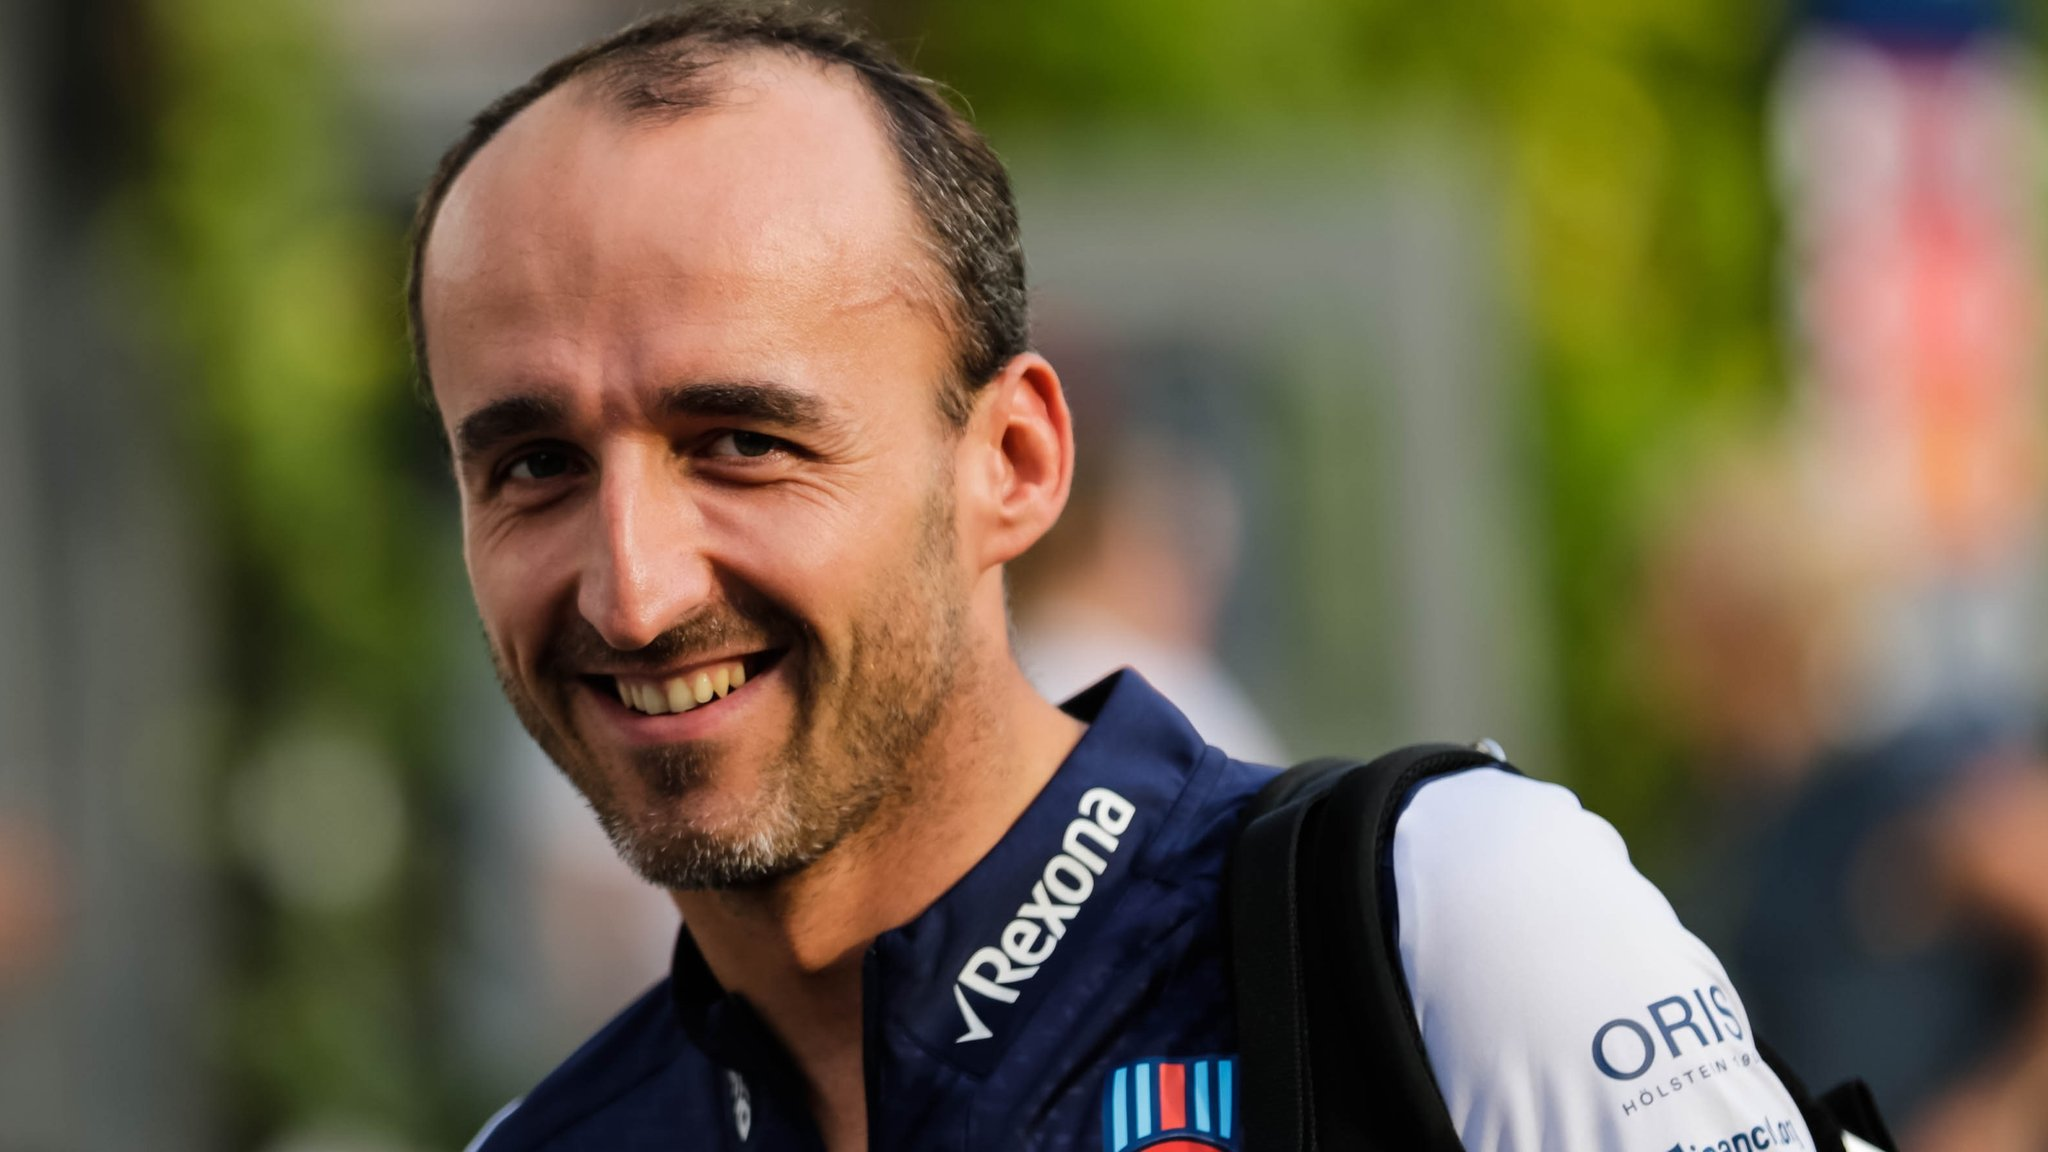 Kubica to make remarkable F1 return